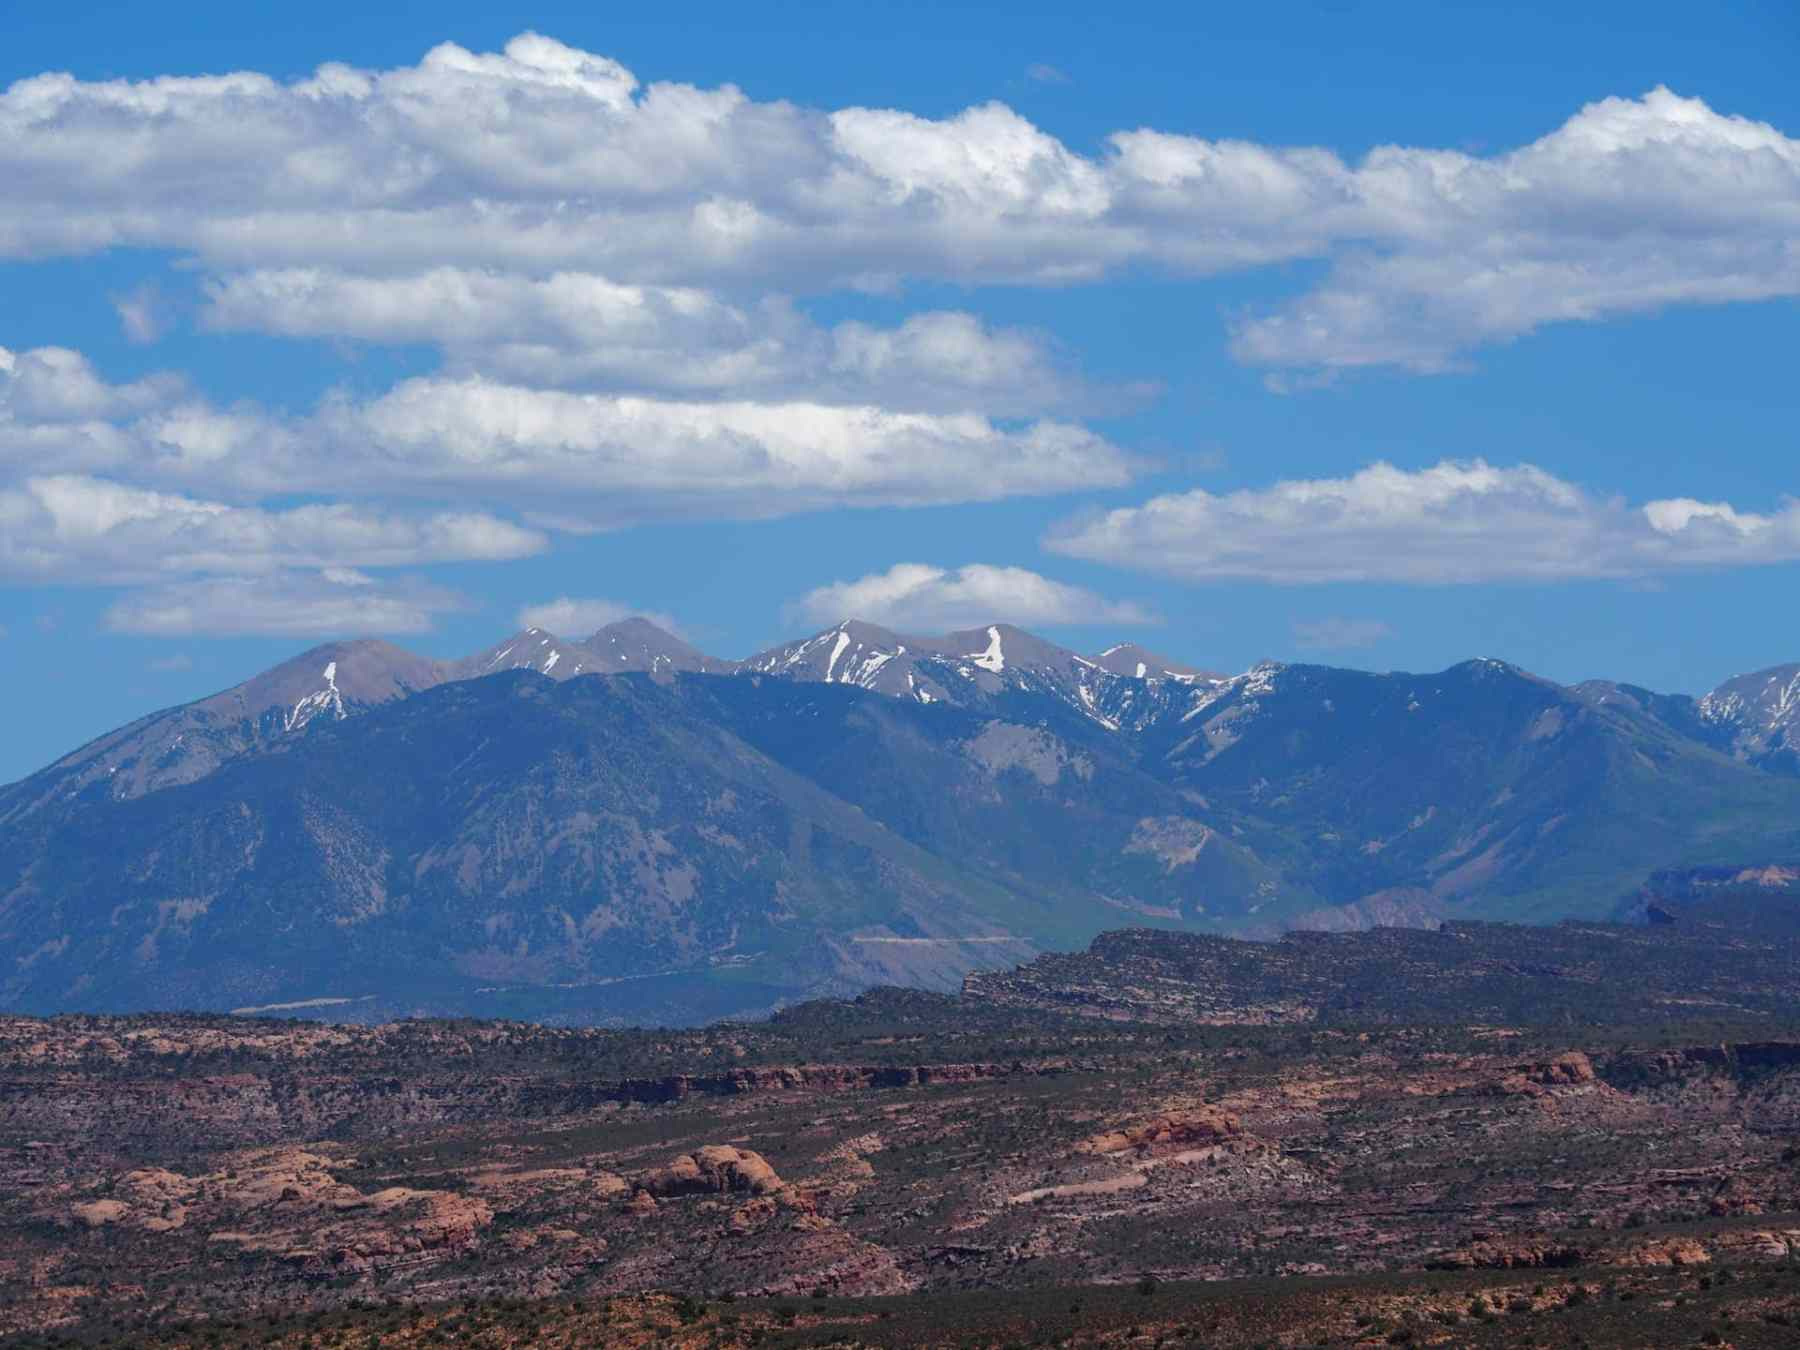 La Sal Mountains seen from Arches